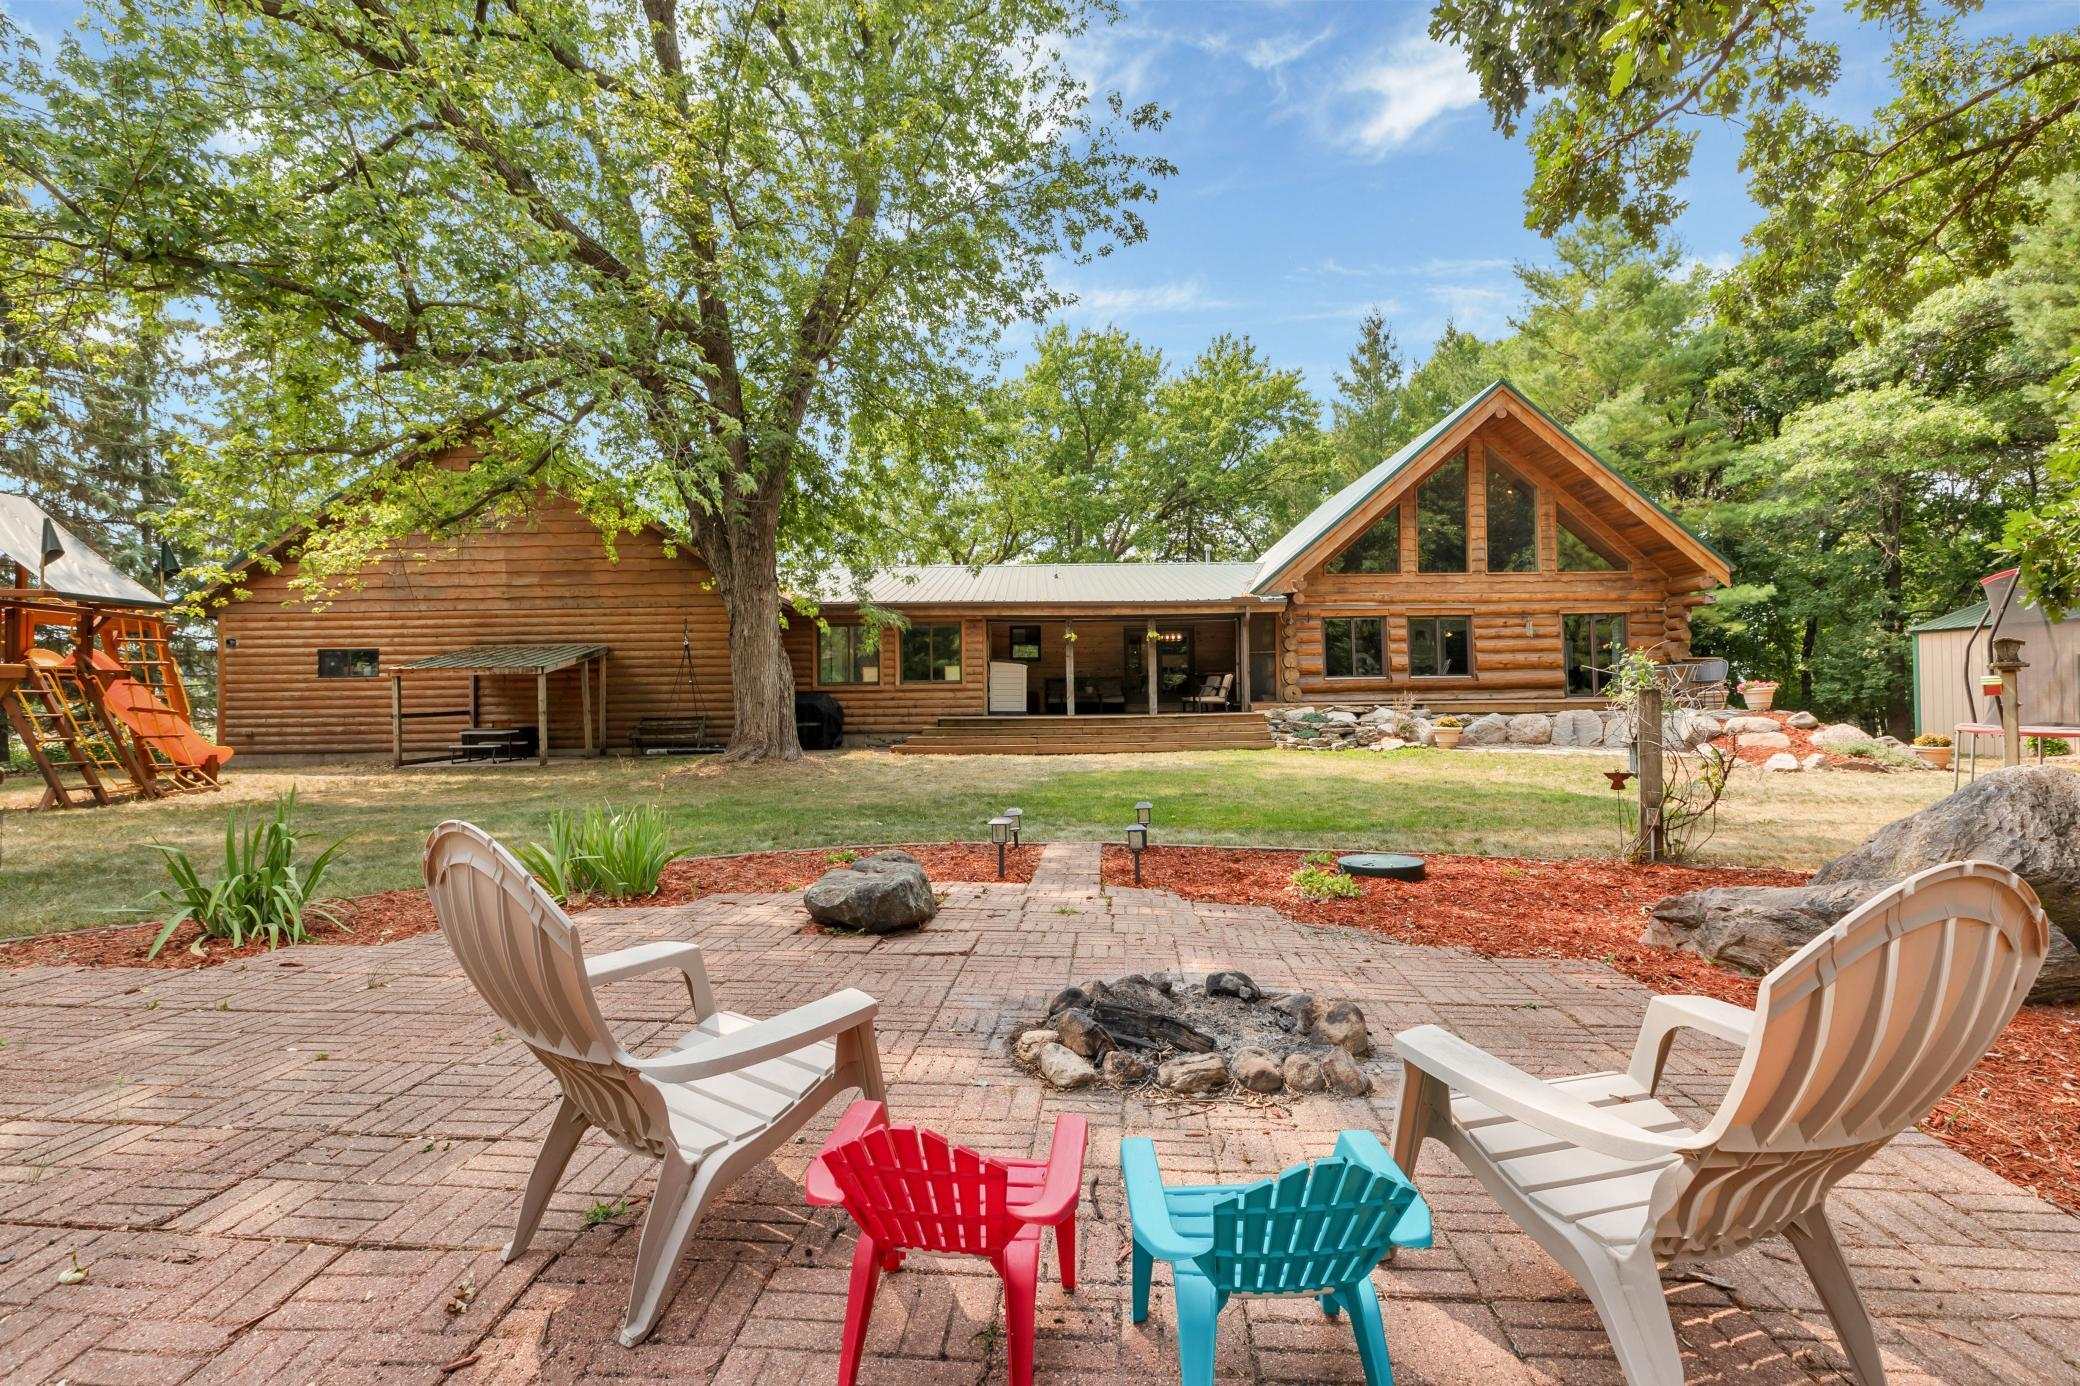 If location is everything, this is the place for you! This 4 bed, 3 bath log home sits on a tar road very near to Lake Koronis' paved walking/bike trail and just a short distance from the lake and golf course. Features and updates by the current owners abound at this property! The kitchen boasts granite counters, hickory cabinets, ss appliances, and oak floors. 3 bedrooms, 2 bathrooms, the great room, dining room, and mudroom are also found on the main floor. The great room has beautiful log accents, a wood burning fireplace, a loft overlooking it, and huge windows with gorgeous views of nature! The basement has a large family room, 4th bedroom, and additional bathroom. Attached to the home is a heated and insulated 3-stall garage with an insulated bonus room above that is ready to be finished. Insulated 30' by 18' pole shed and smaller 8' by 8' allow room for toys or a shop. You will feel like you are up north when you step into the back yard! Out of room! Come look for more!